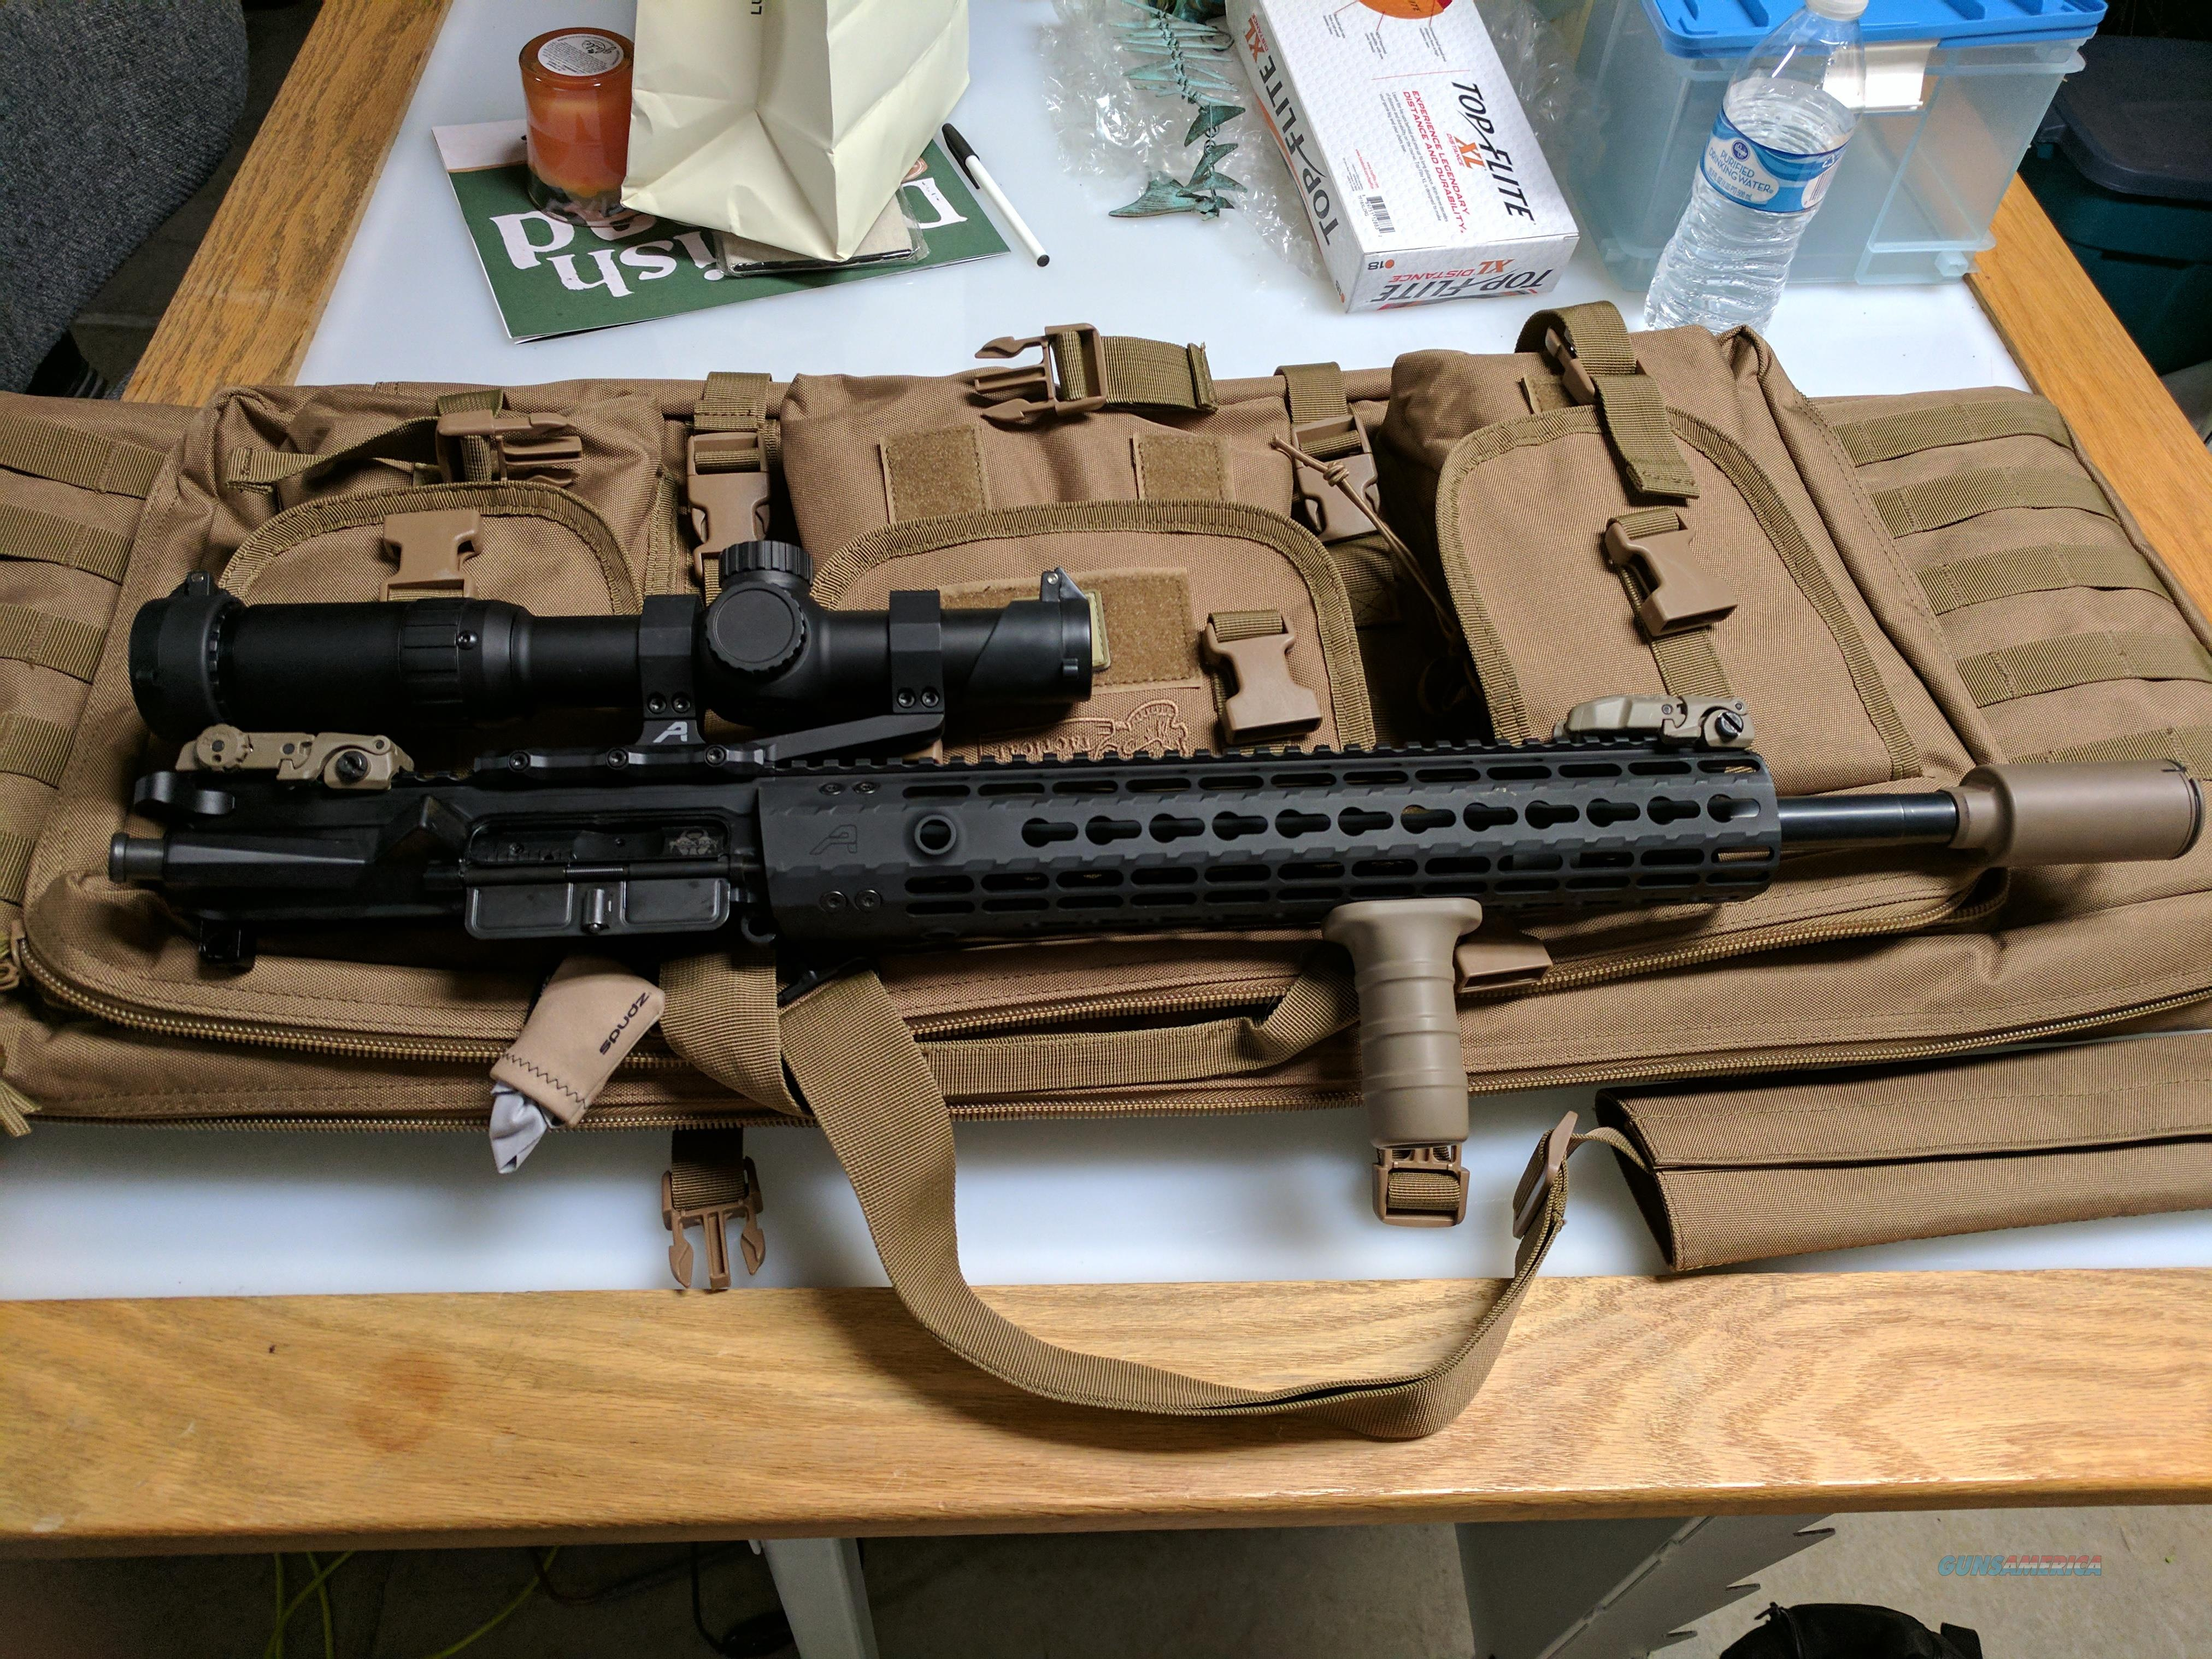 Aero Precision/ Ballistic advantage upper NO BCG or charging handle  Guns > Rifles > AR-15 Rifles - Small Manufacturers > Complete Rifle